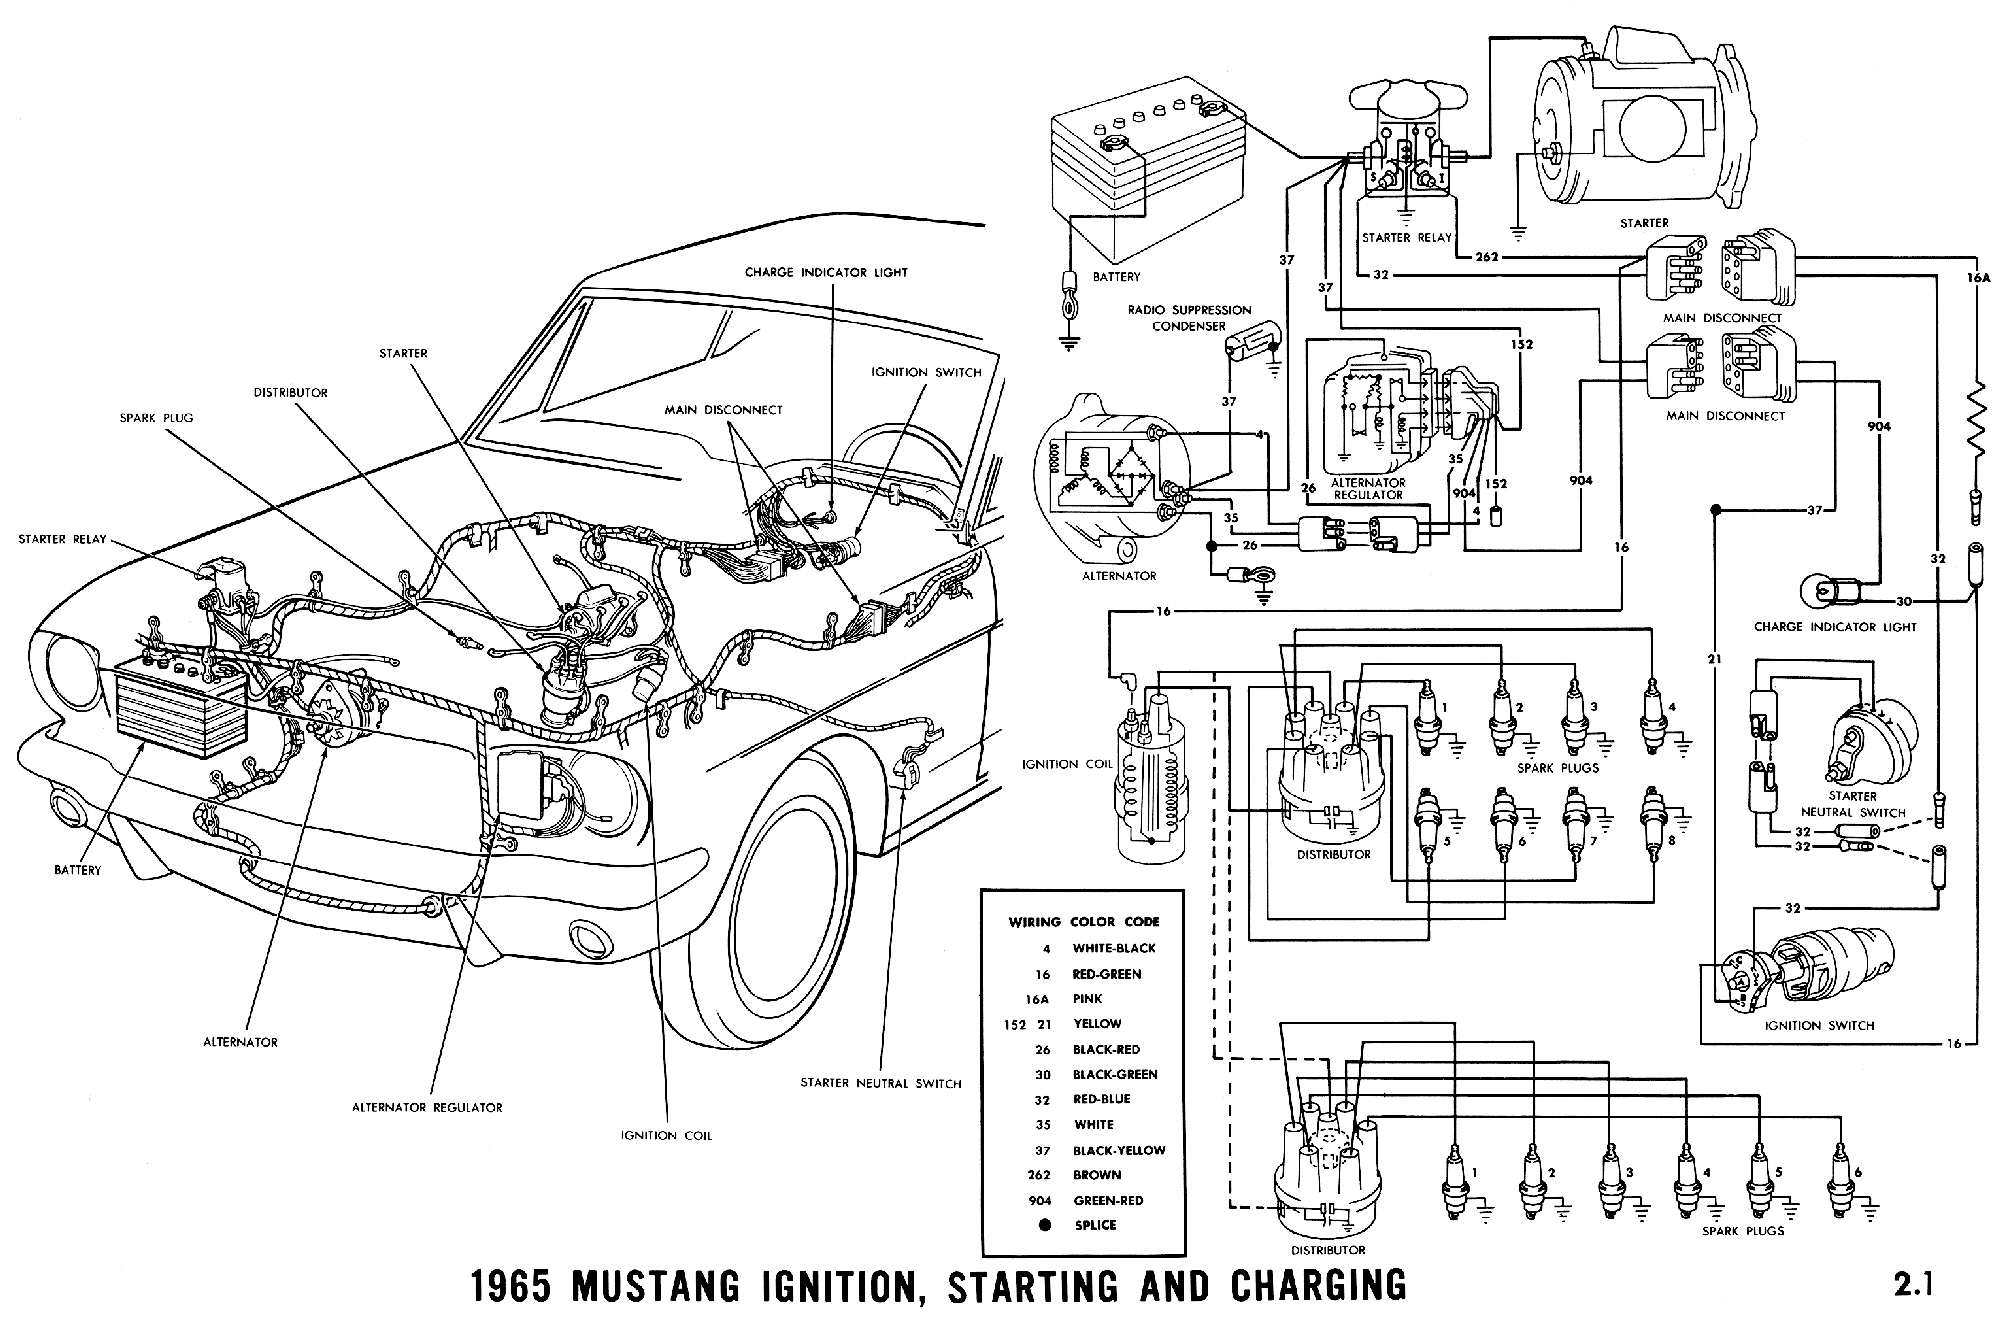 hight resolution of 1966 mustang fuse box location wiring diagram name 1966 ford mustang fuse box location 1966 mustang fuse box location